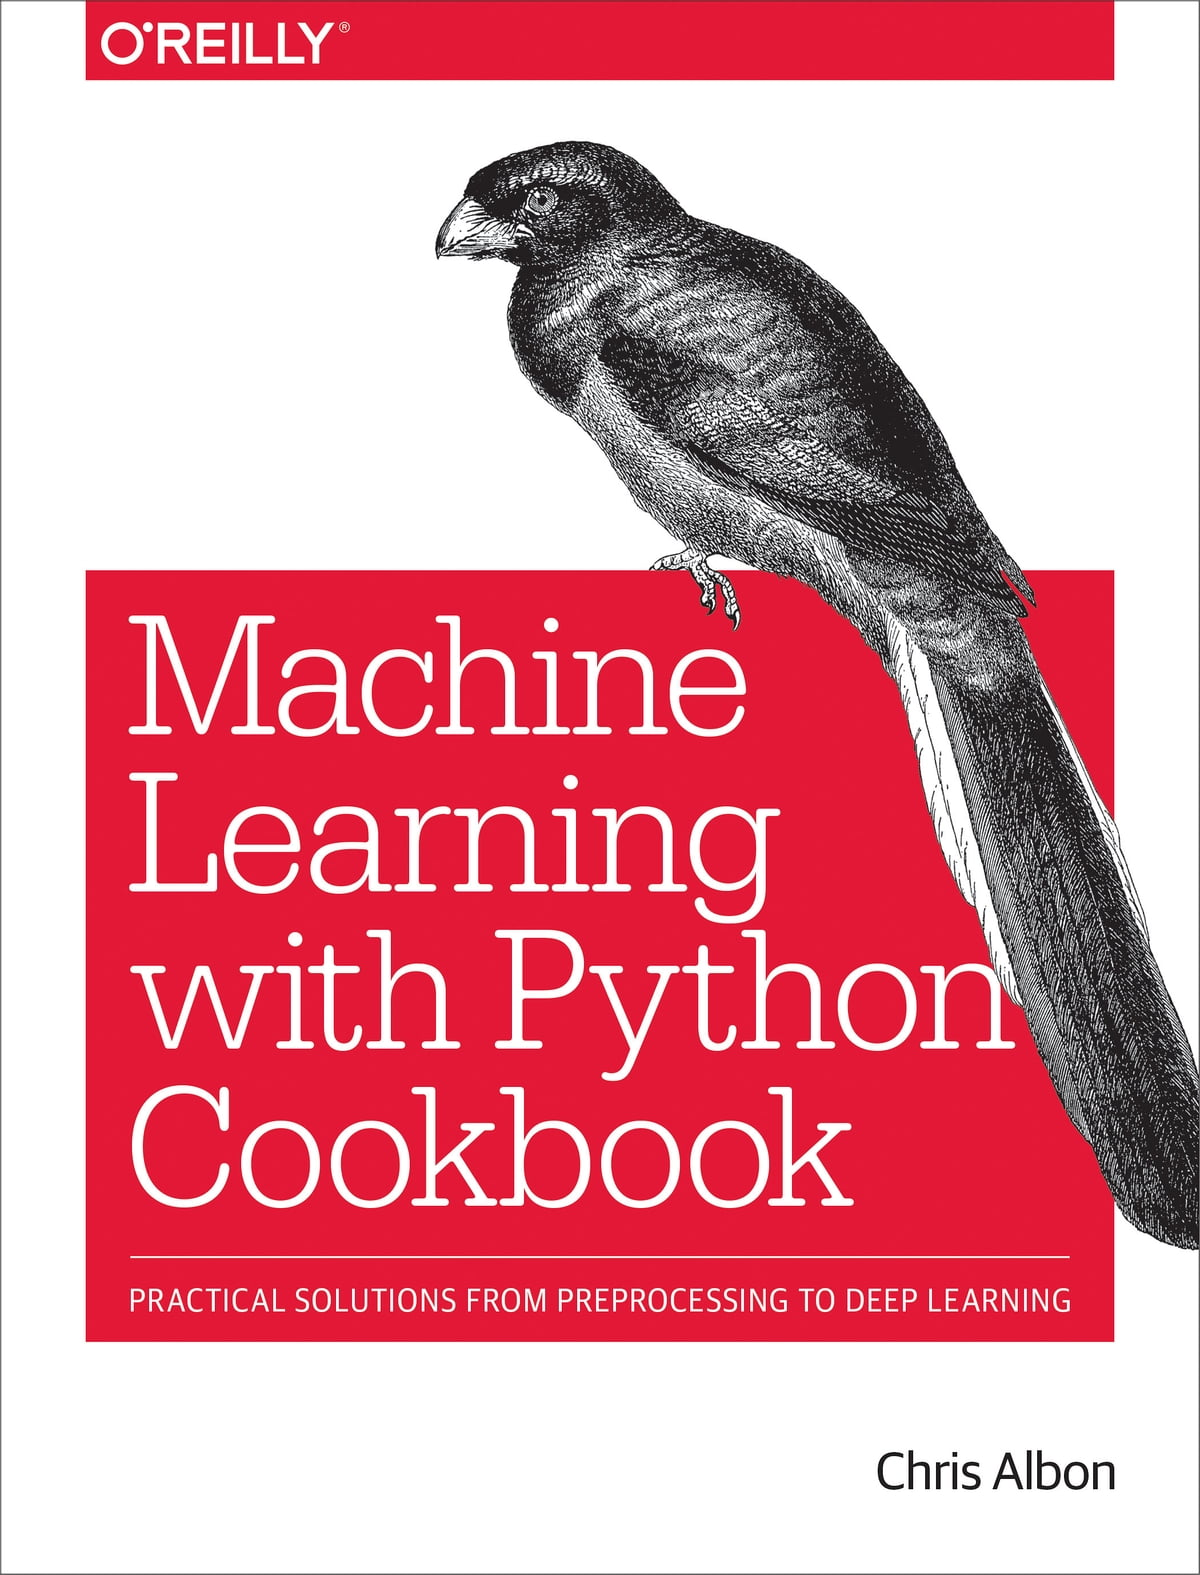 Python Cookbook: No. 3 : Recipes for Mastering Python